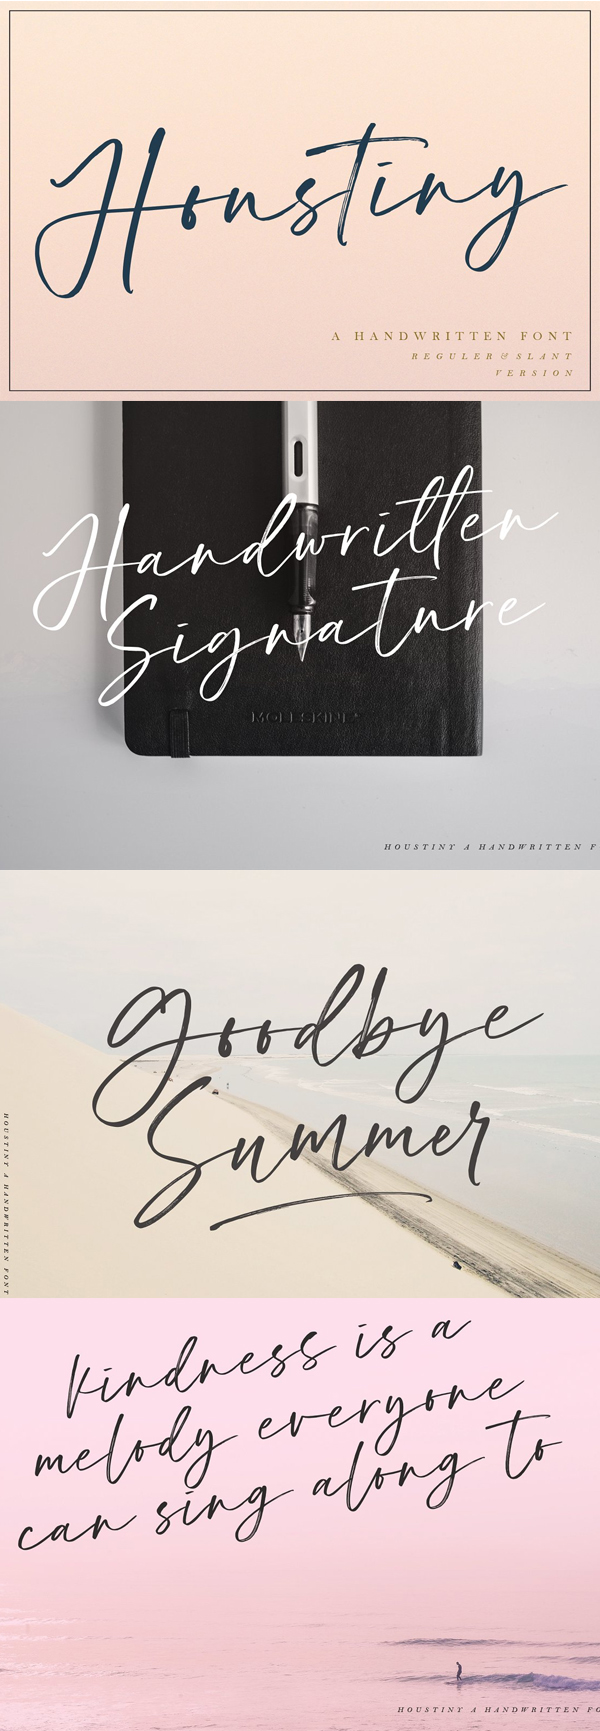 100 Greatest Free Fonts For 2021 - 70